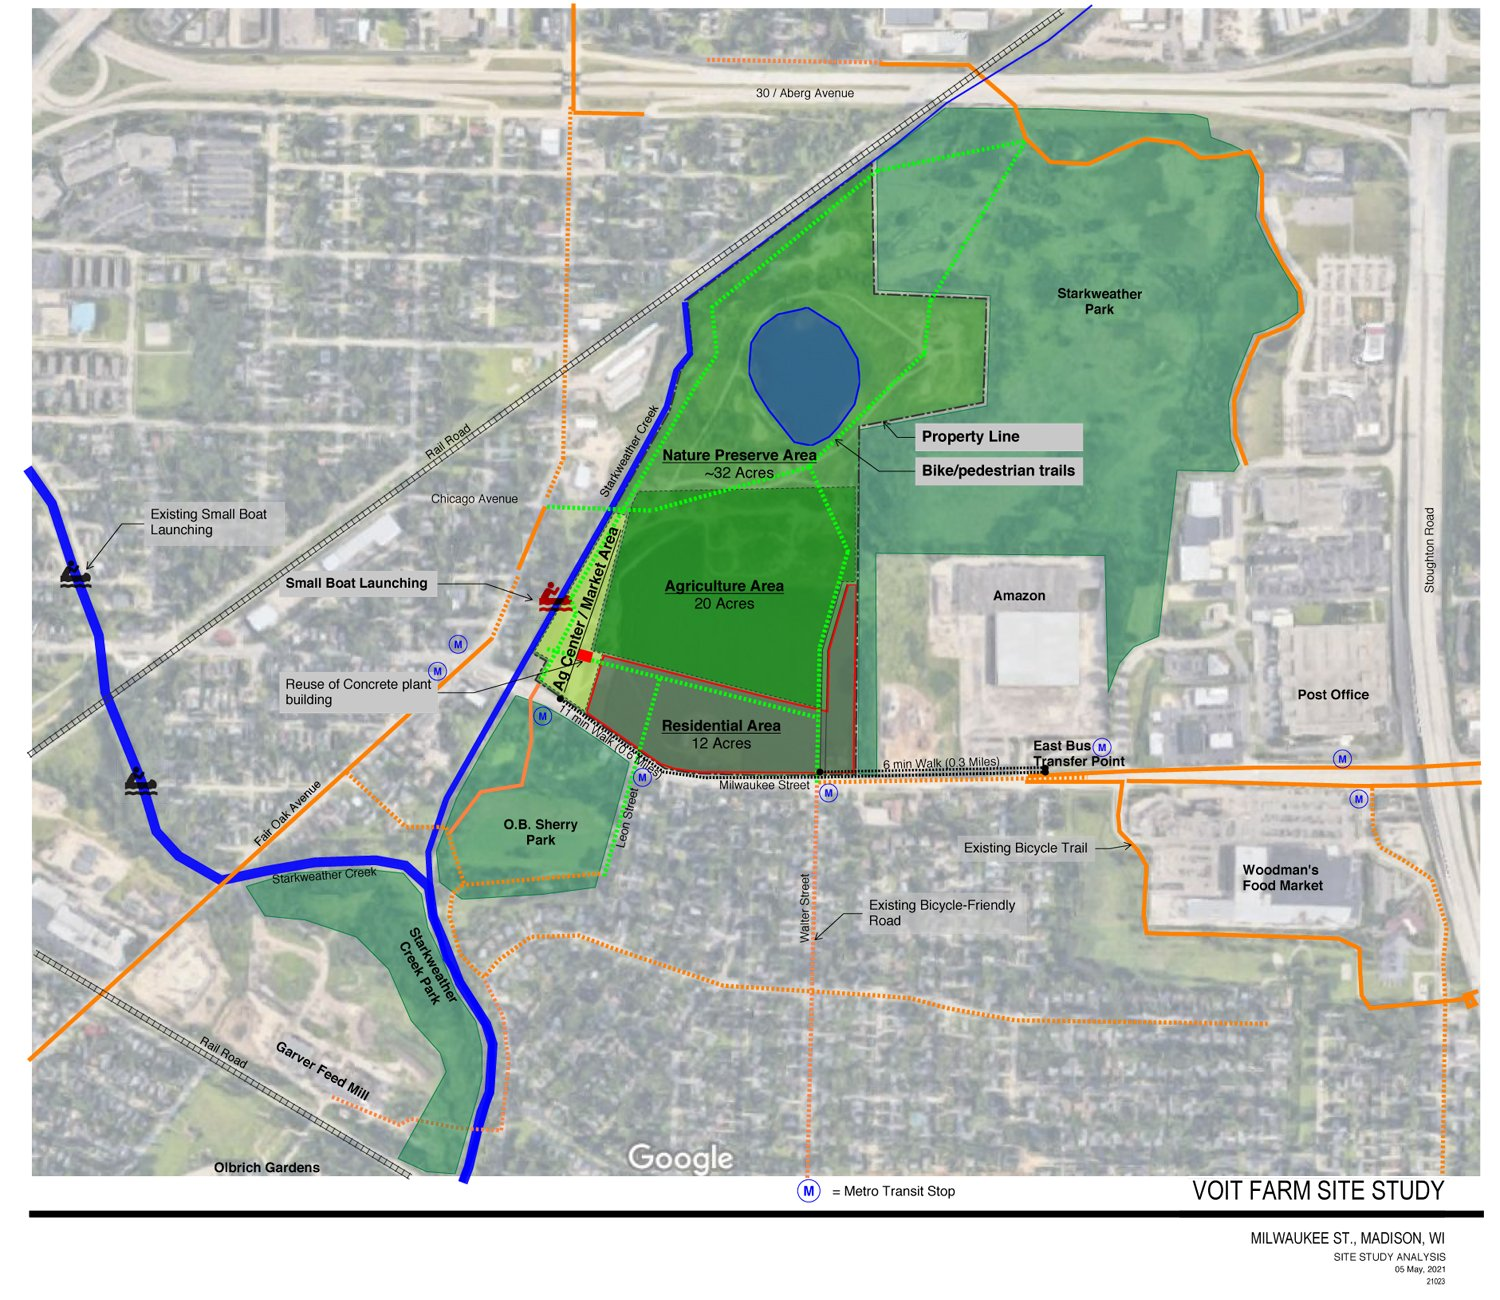 a map of the proposed Voitlandia farm agrihood site, and an overlay of architectural design options for the future site. (Photos courtesy of Save the Farm)